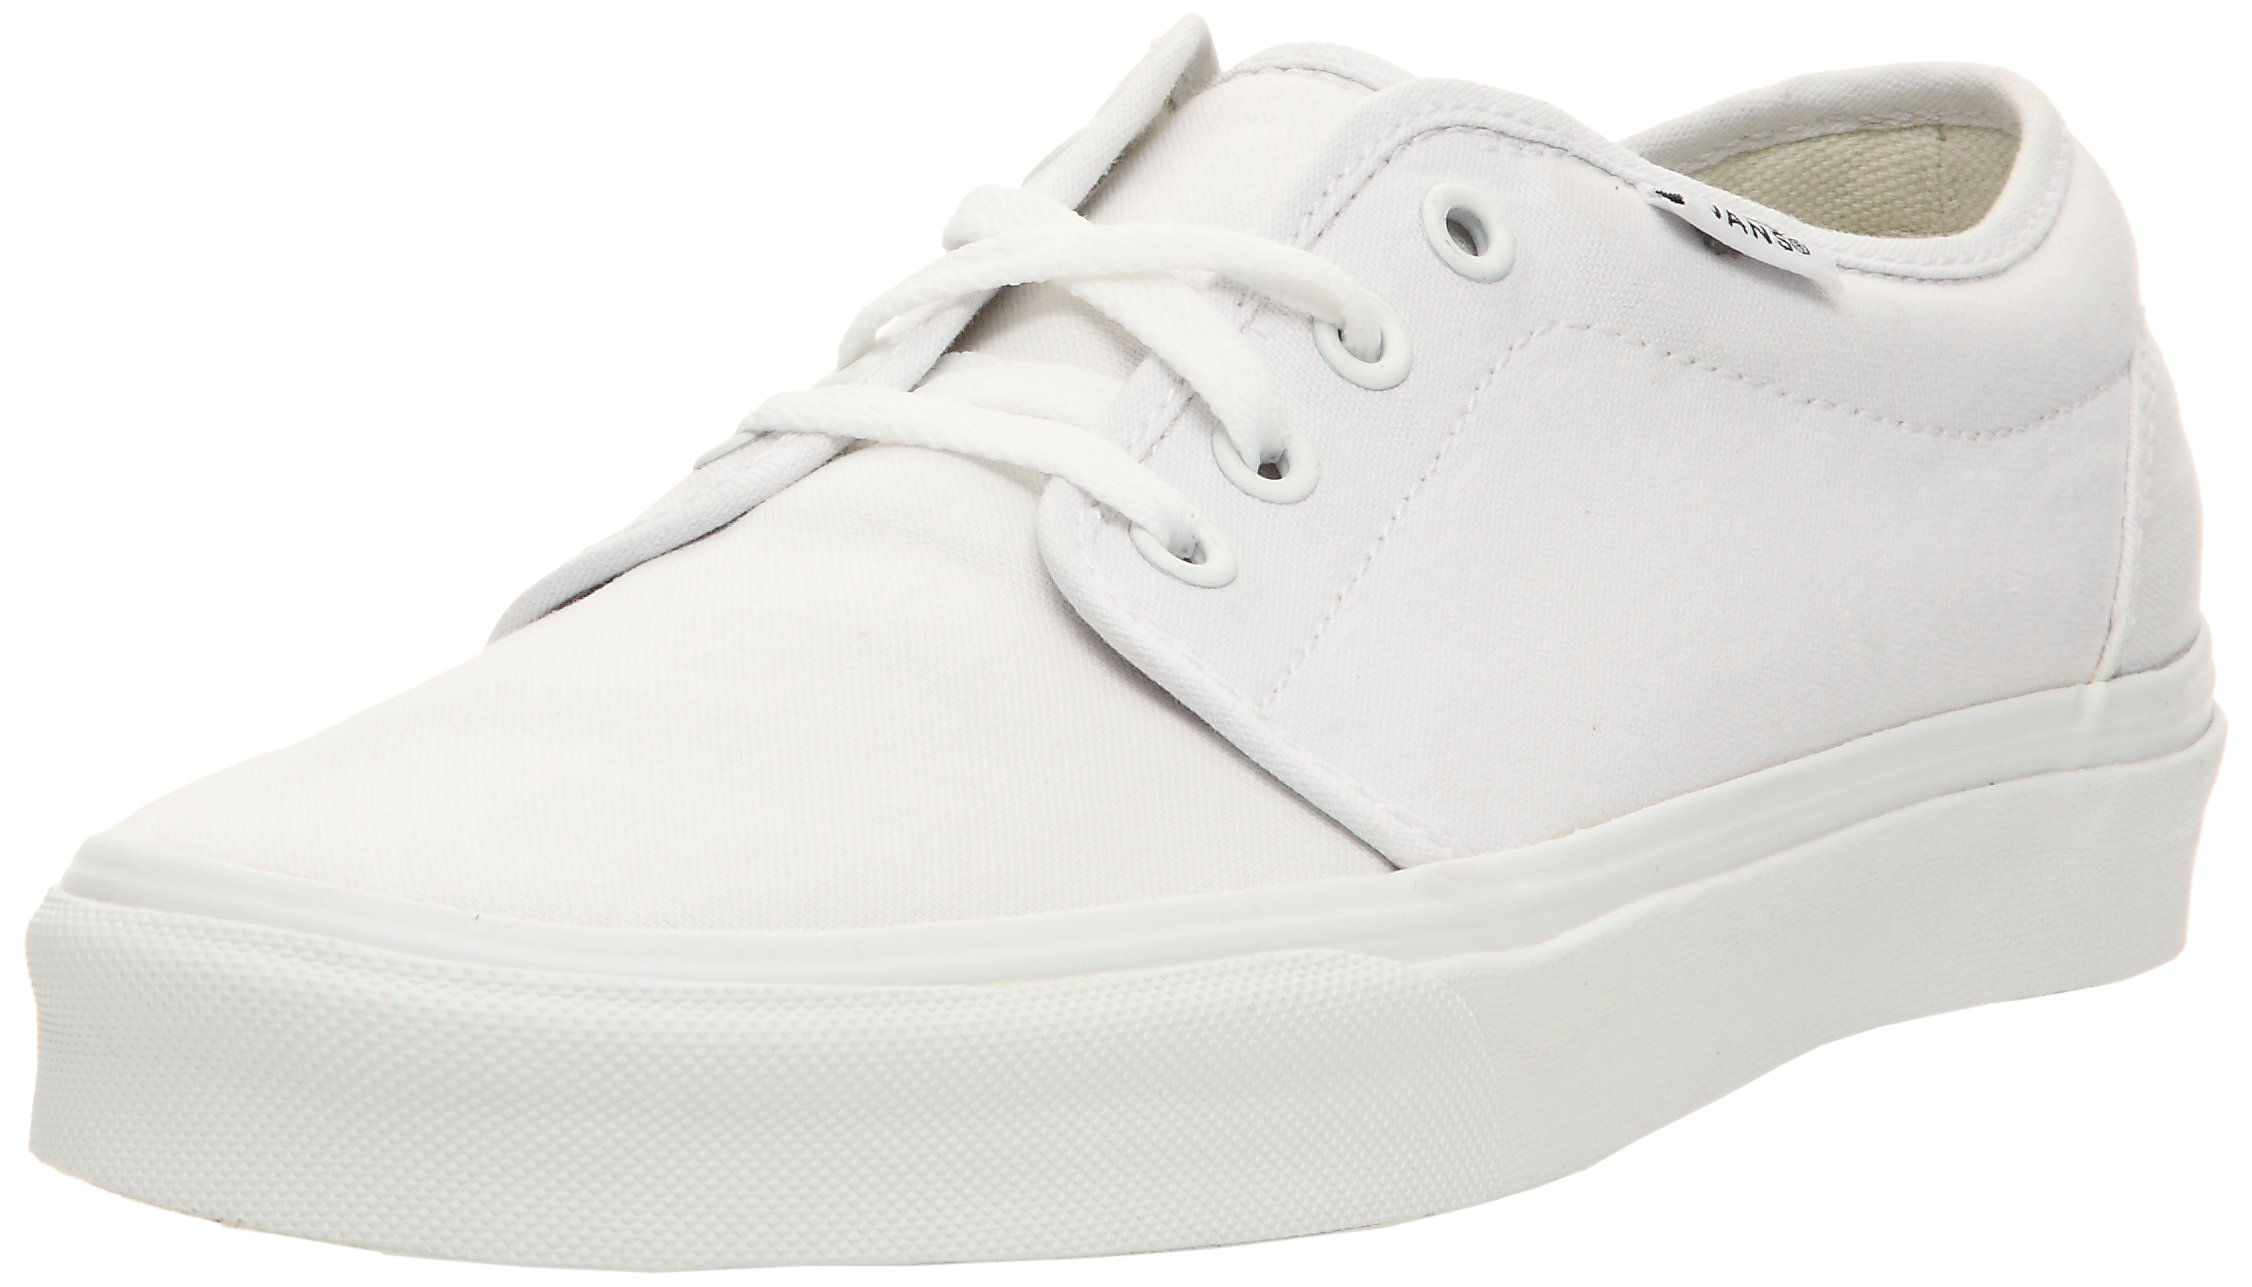 bd652f4ab3 Galleon - Vans Unisex s 106 VULCANIZED SKATE SHOES 12 (TRUE WHITE)